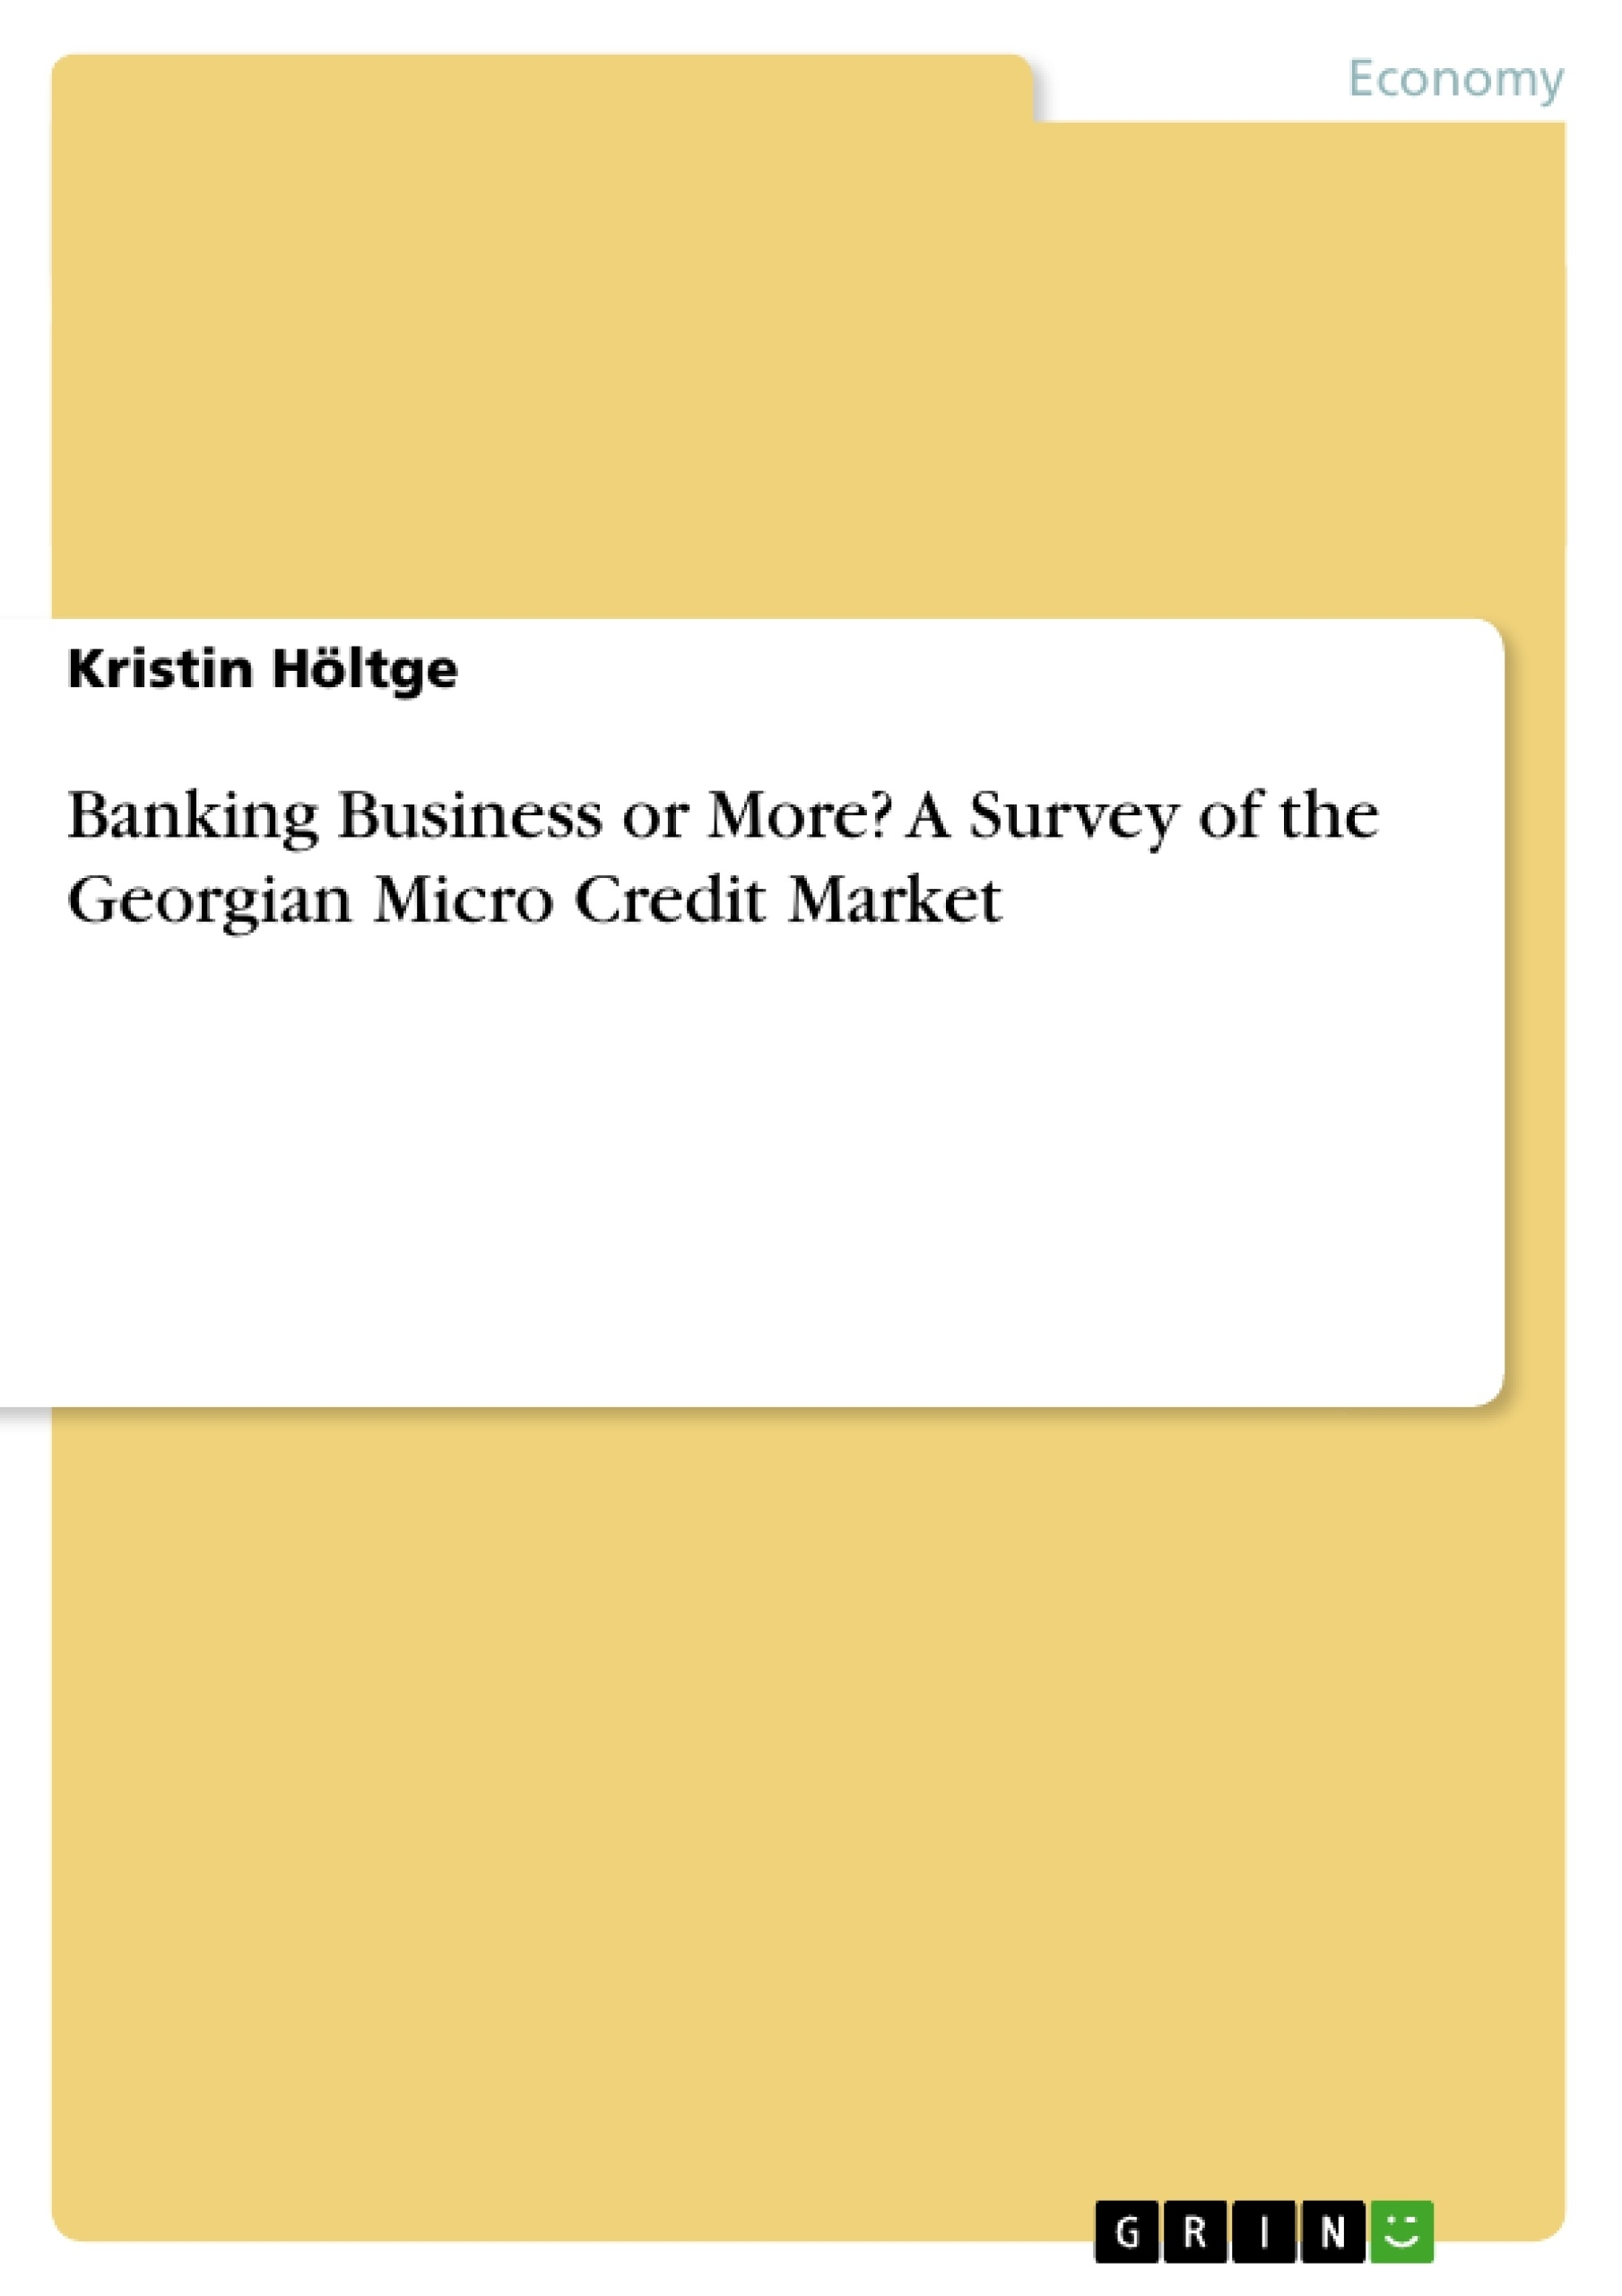 Title: Banking Business or More? A Survey of the Georgian Micro Credit Market